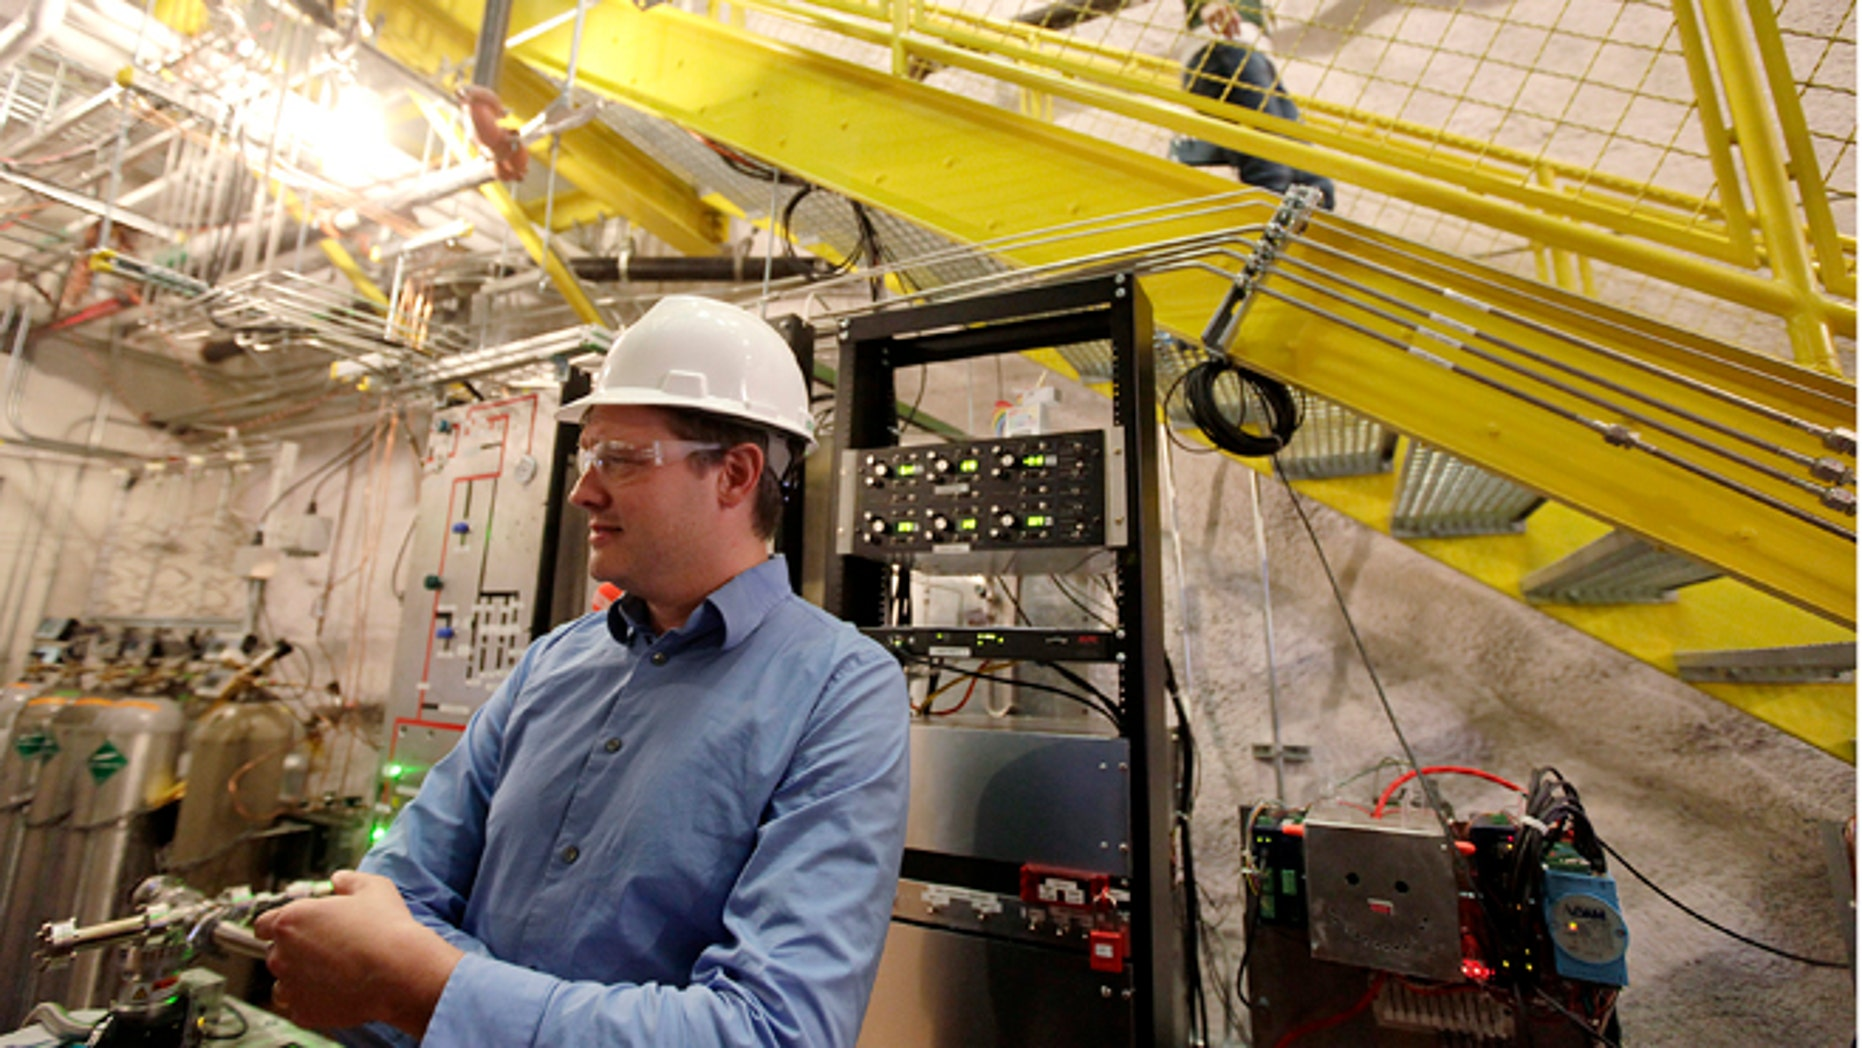 Oct. 29, 2013: Physicist Dan McKinsey, of Yale University, explains an experiment being conducted deep in an abandoned gold mine in Lead, S.D., to search for elusive and mysterious dark matter.